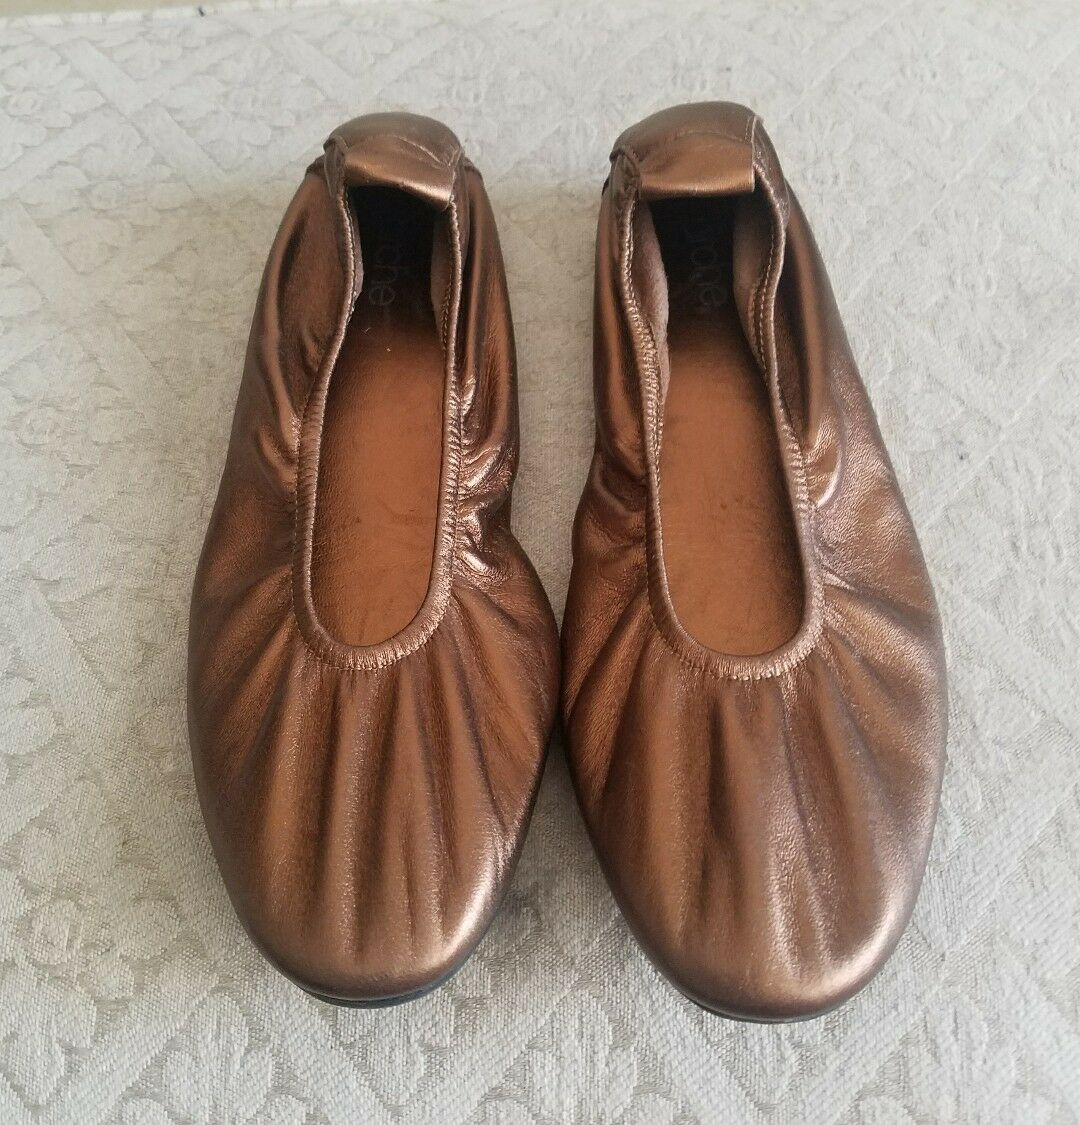 Arche LAIUS Brown Copper Metallic Ballet Flat Size EU 38, US 7.5 M NEW